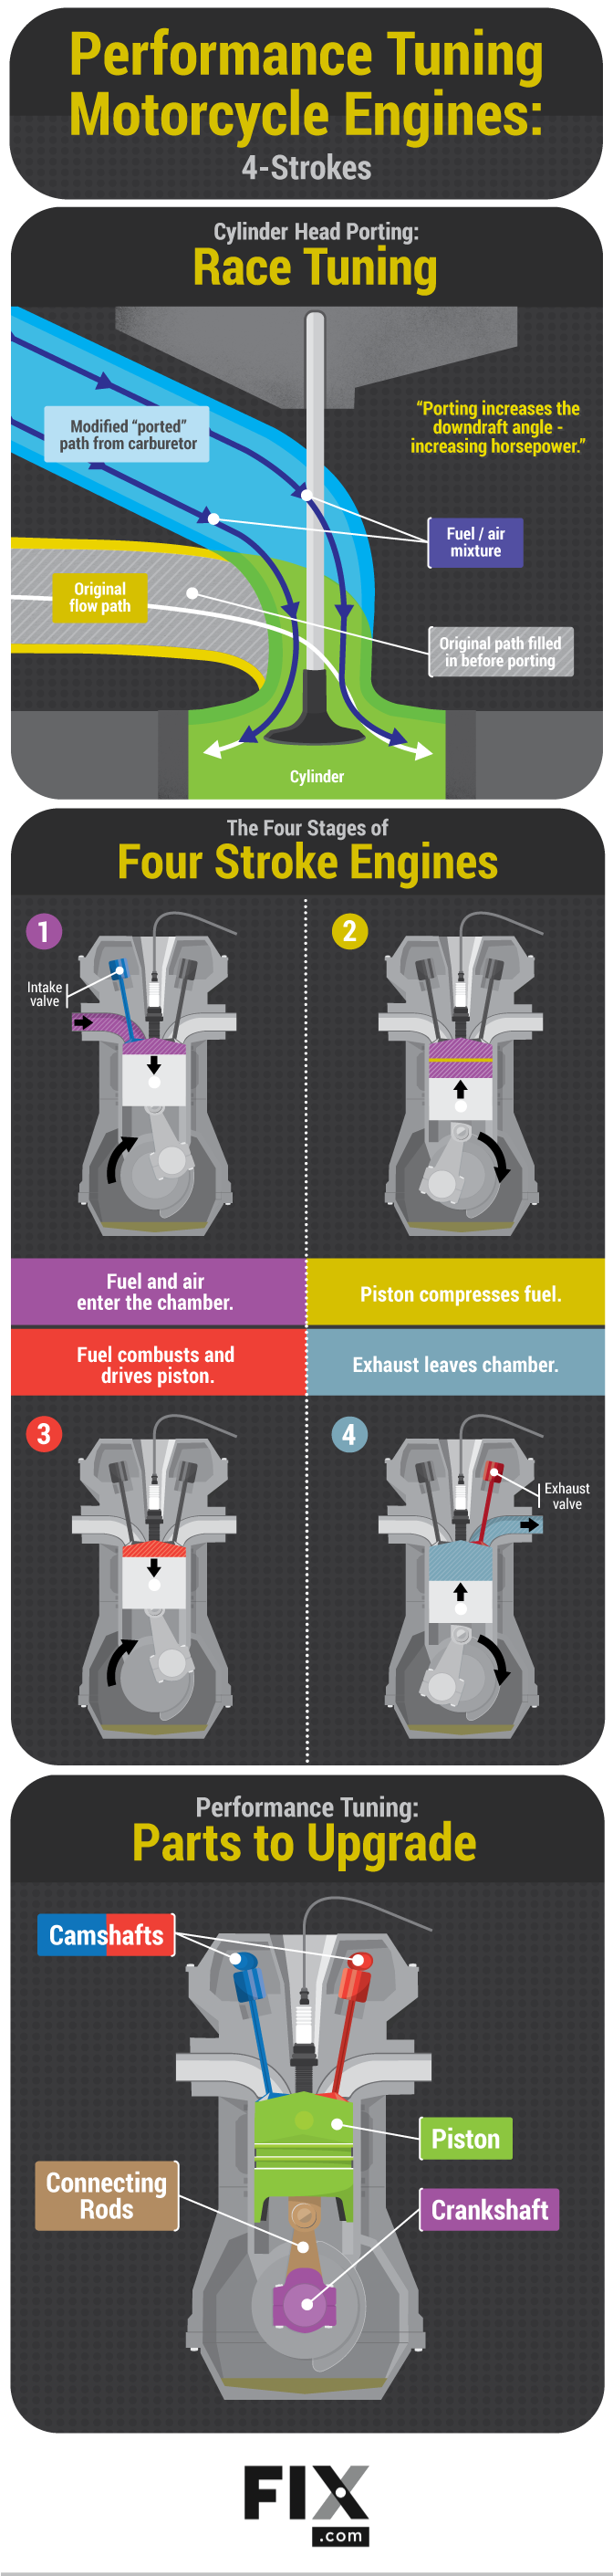 Performance Tuning Motorcycle Engines | Fix com